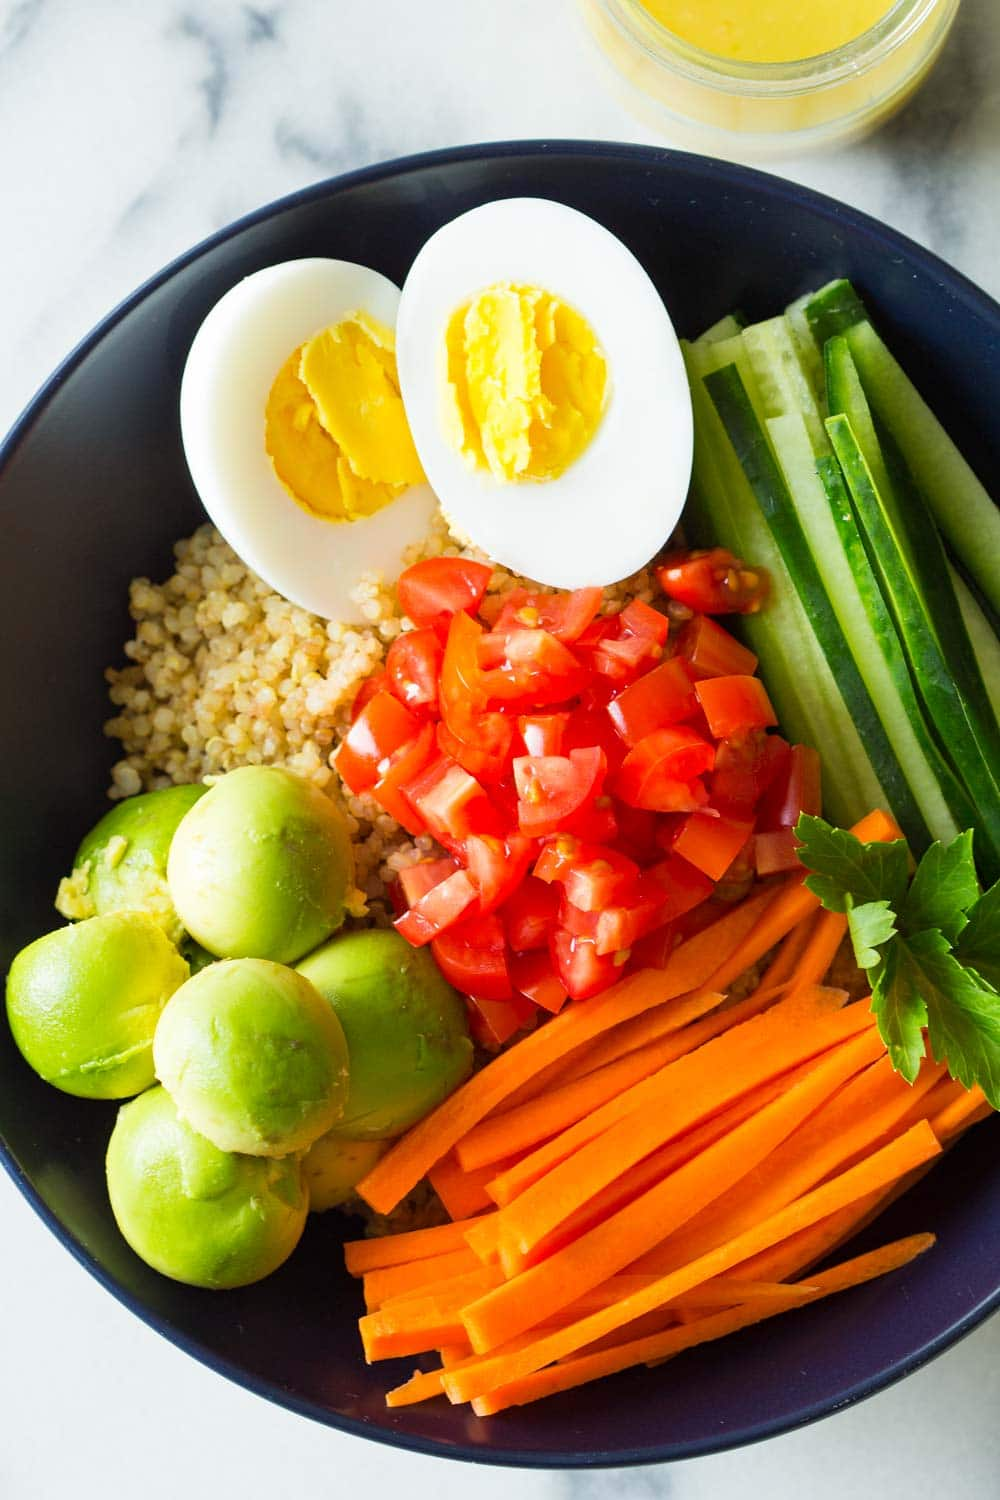 Instant Pot Quinoa Bowl with hard-boiled egg, avocado, carrot, cucumber and tomato